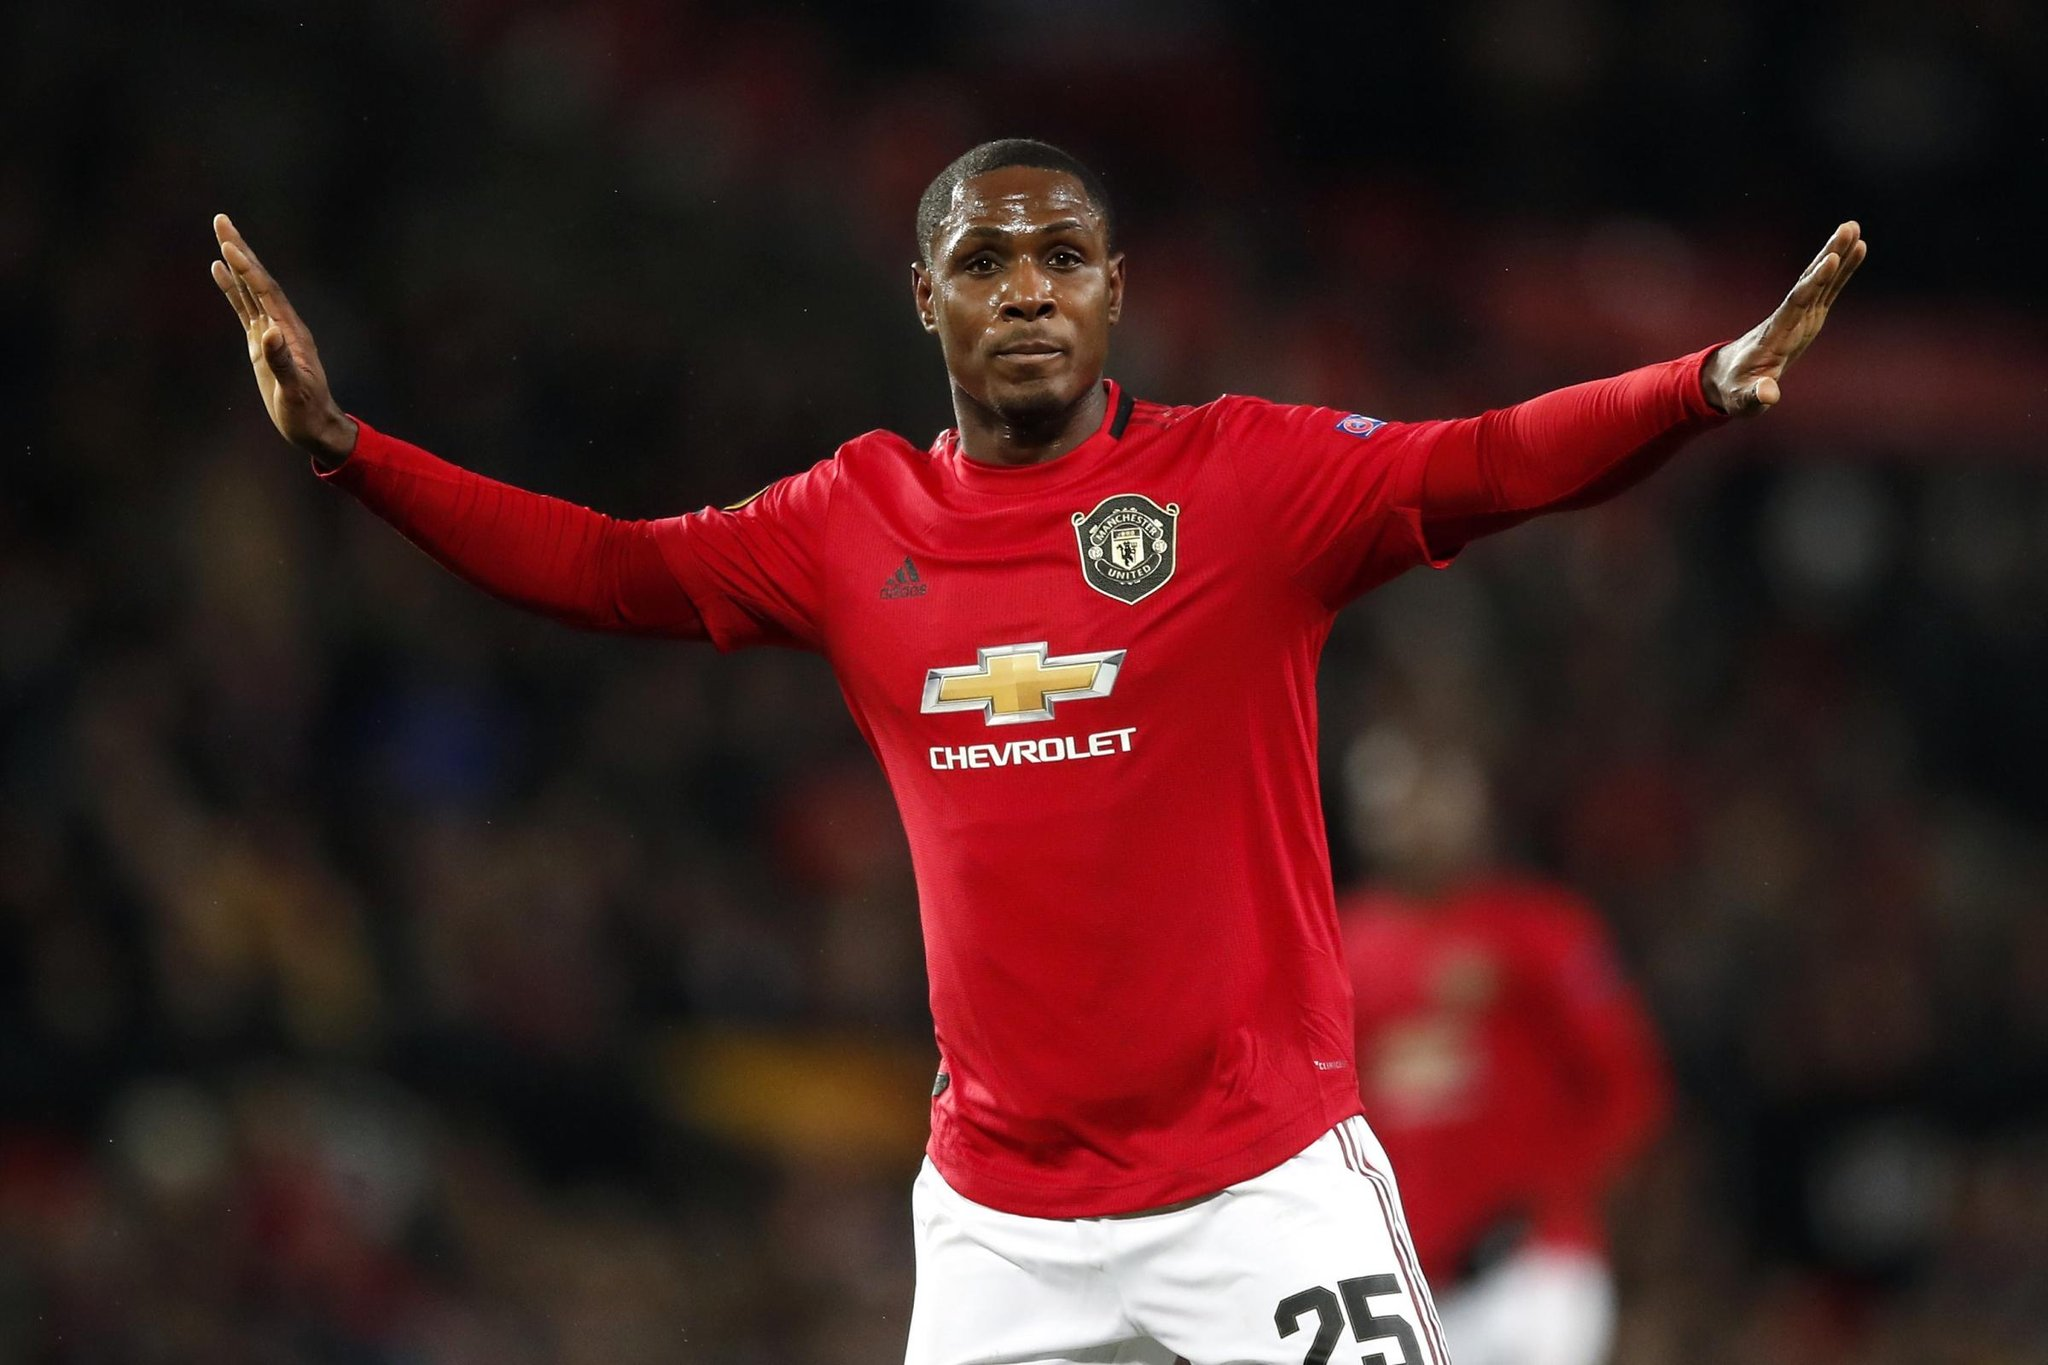 Man United To Pay Shenhua £10.5m For Ighalo Loan Extension